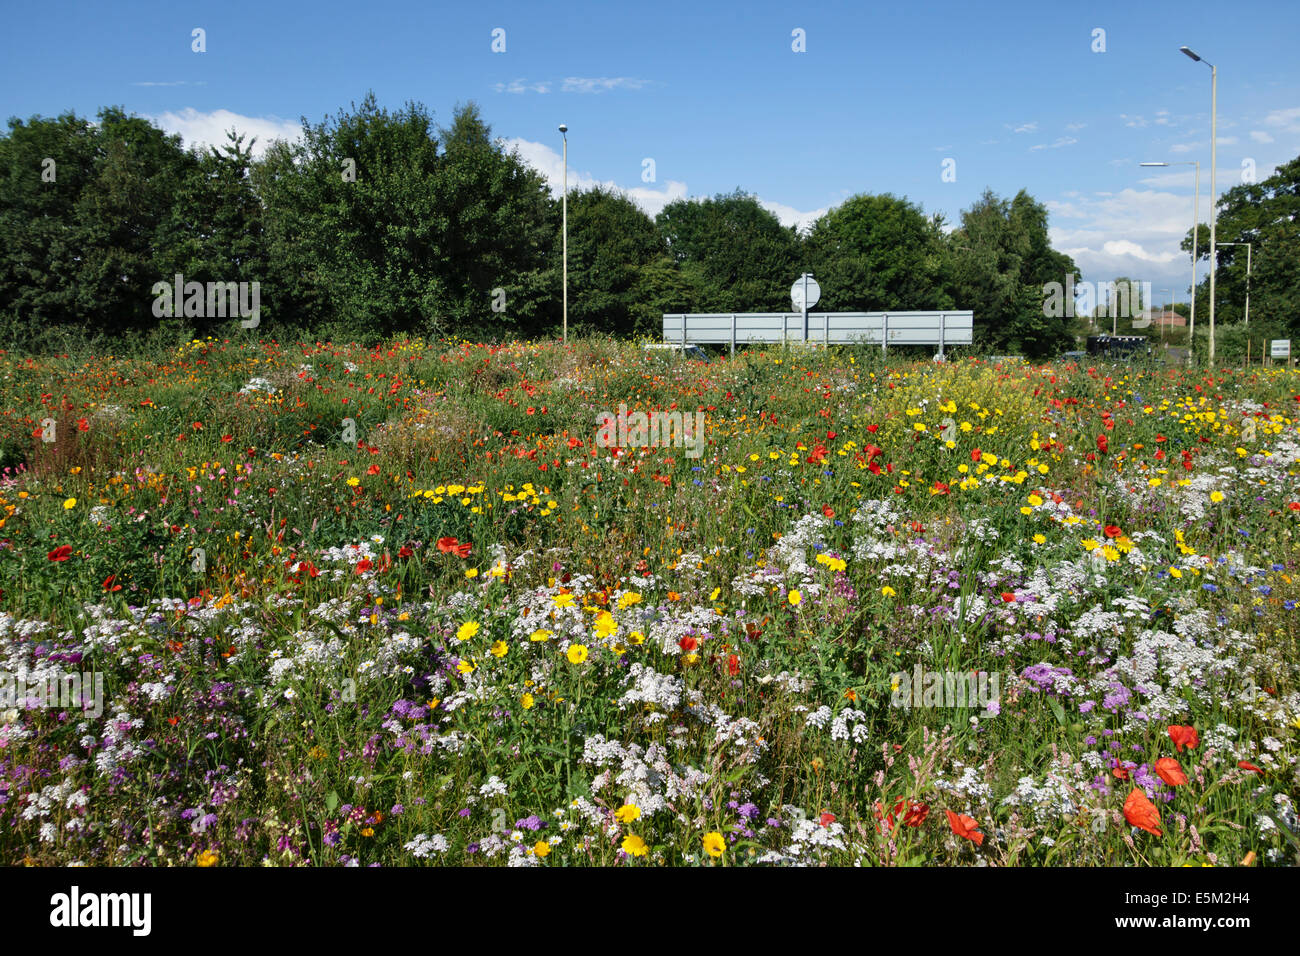 A roundabout seeded with wildflowers on the A49 near Whitchurch in Shropshire, UK - Stock Image